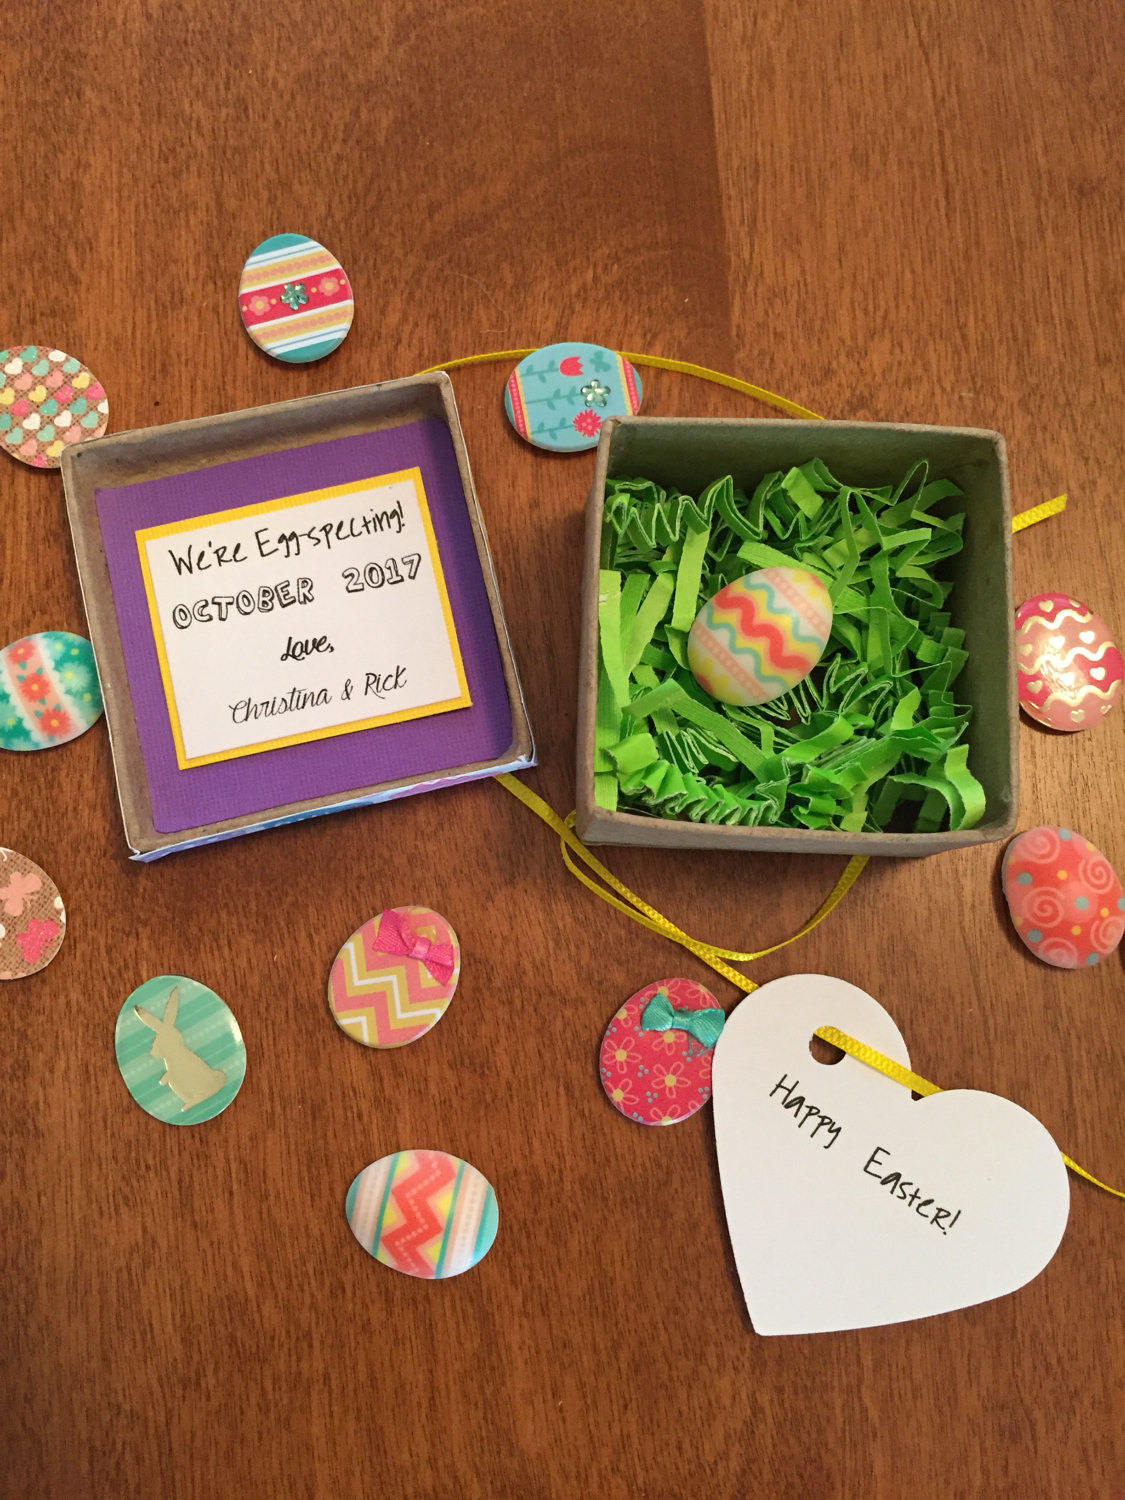 6 easy easter pregnancy announcements ideas easter pregnancy announcement ideas and inspiration egg hunt negle Image collections